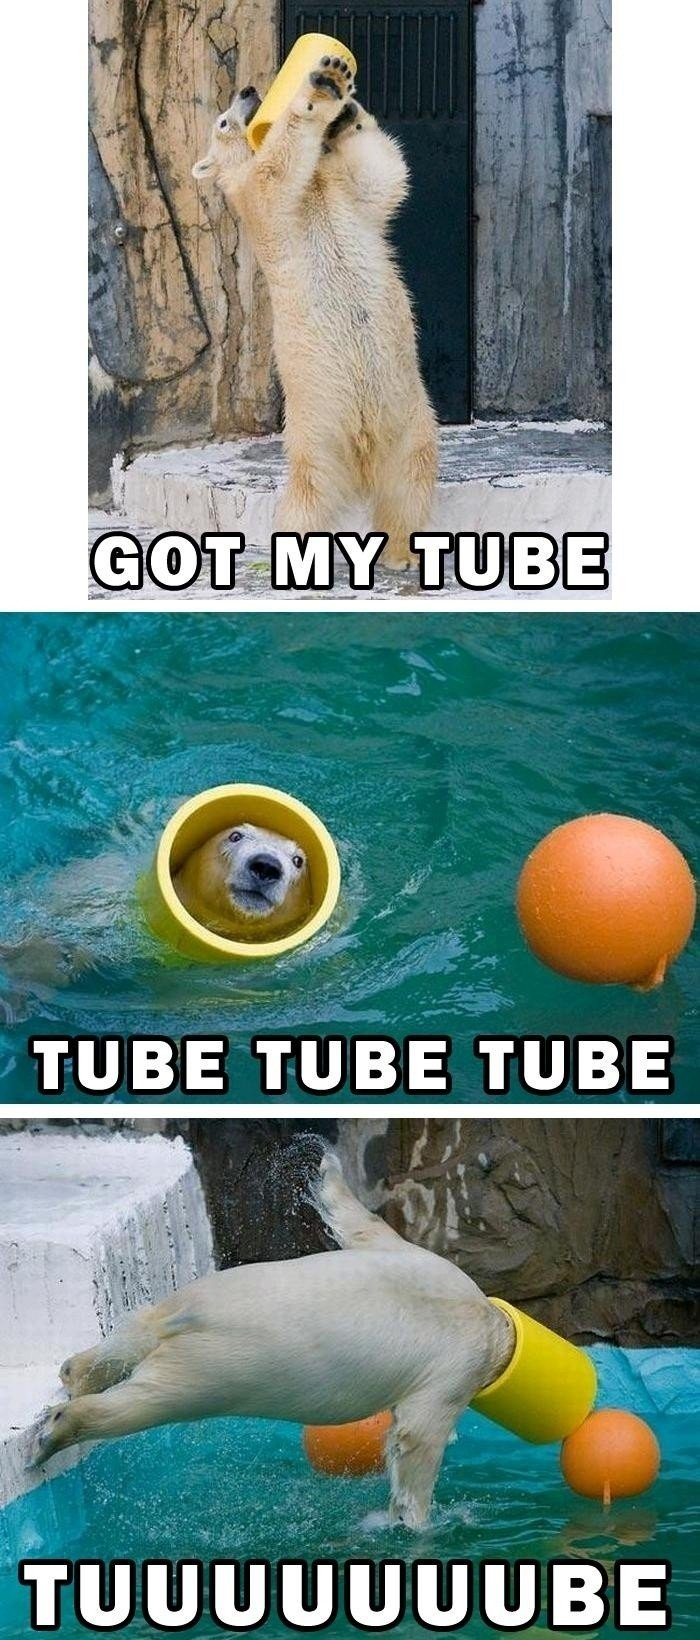 tube - its gonna be a long week